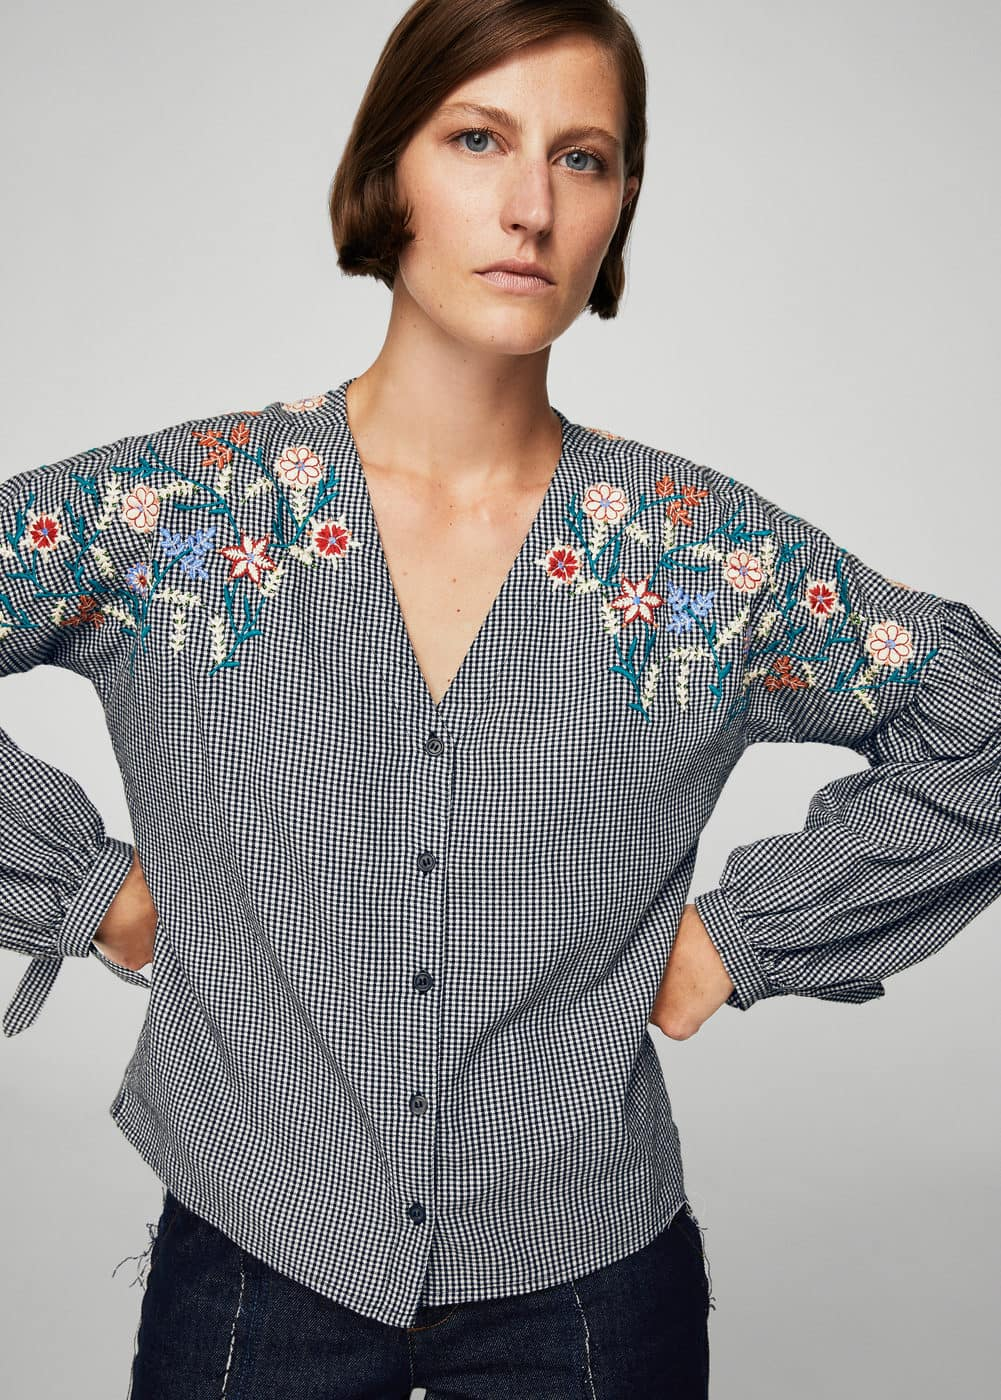 Floral ebroidery gingham blouse | MANGO